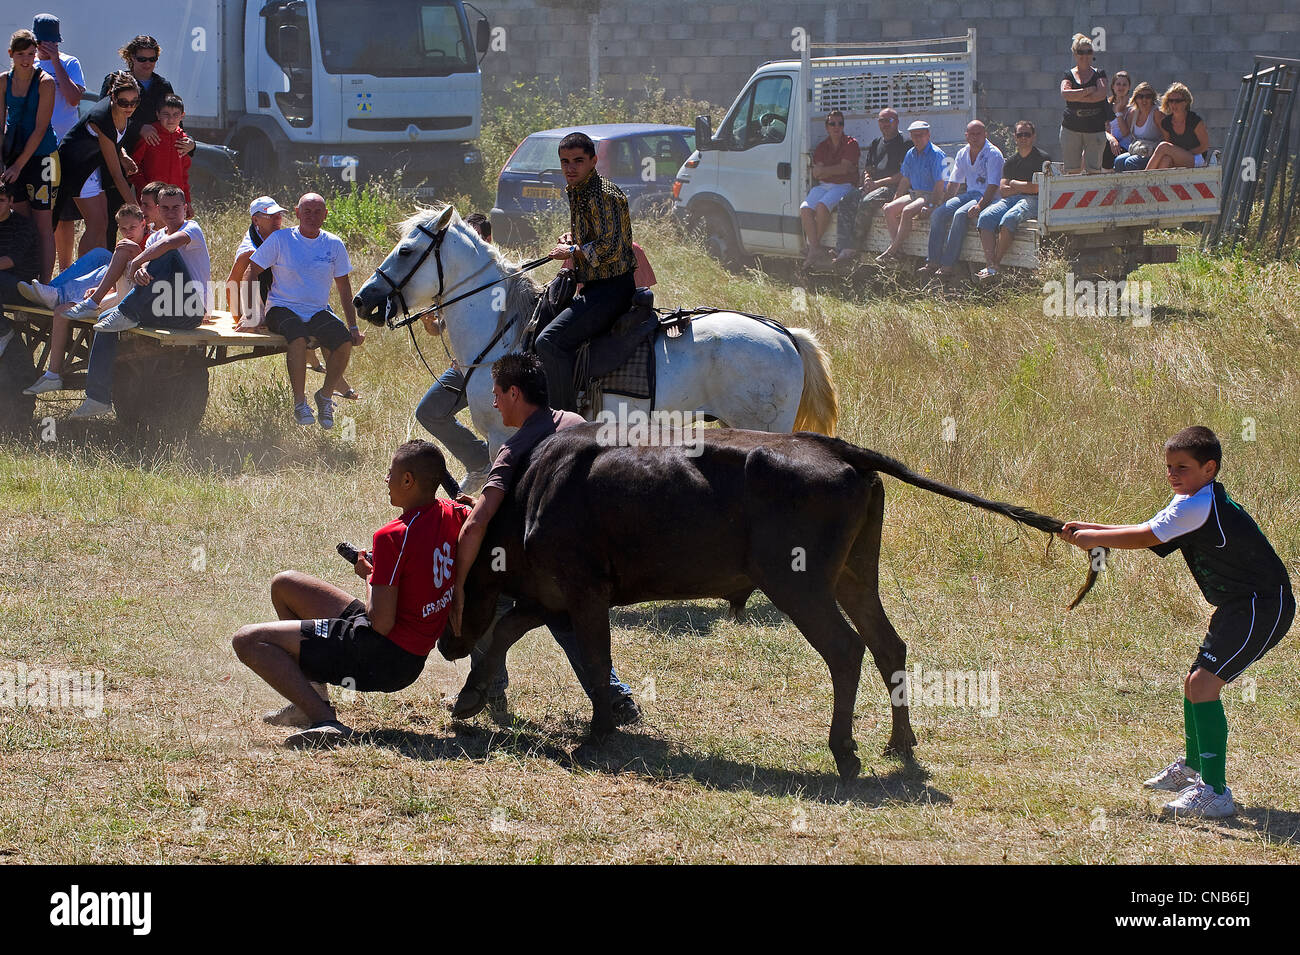 France, Gard, Mus, the Abrivado (release of bulls) consists for the cowboys to escort the bulls from the pastures - Stock Image